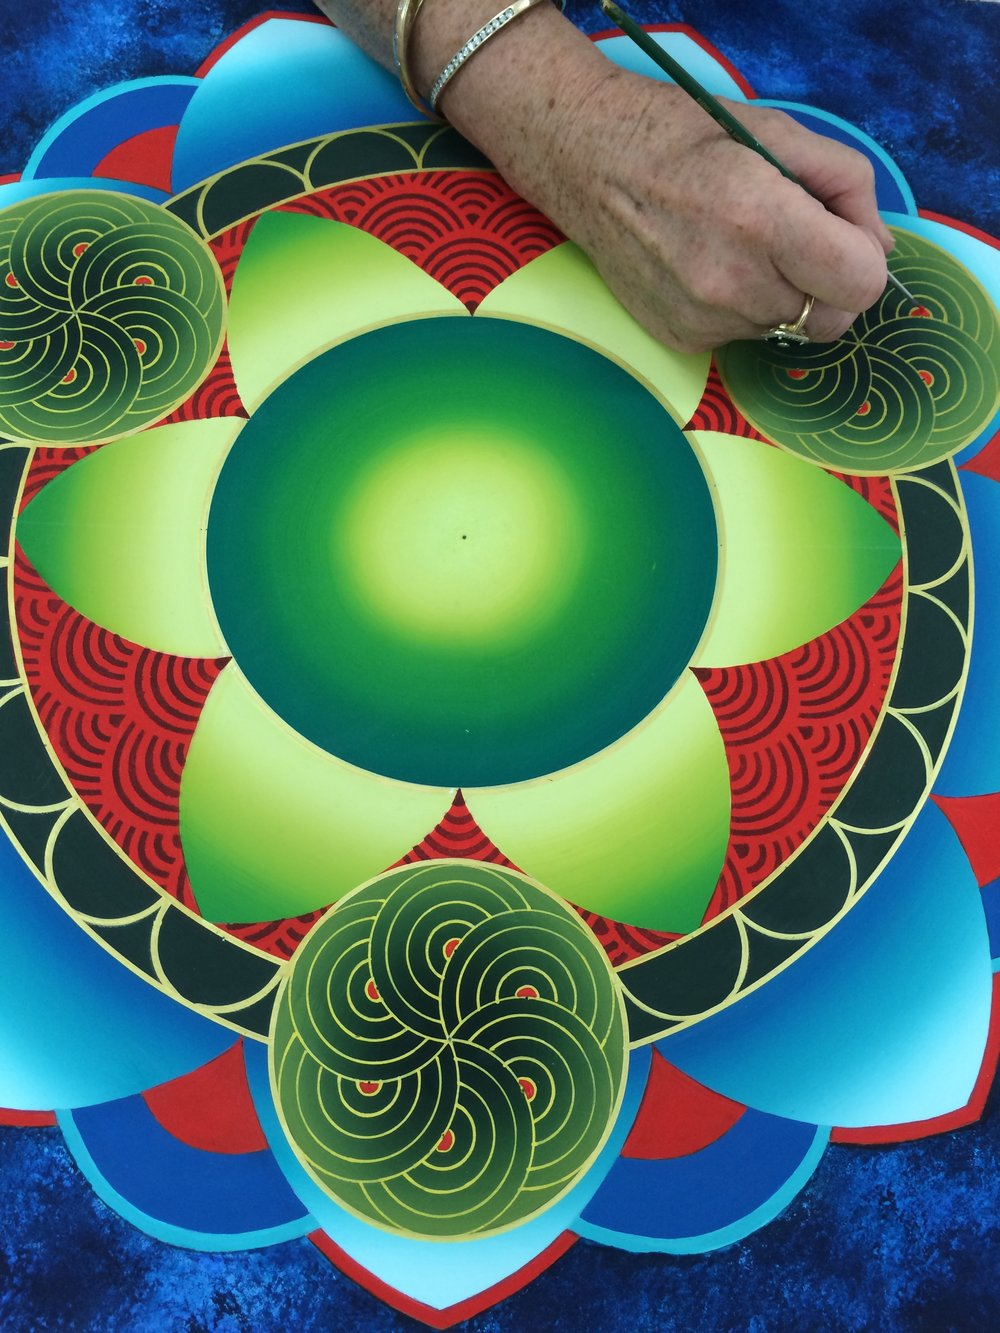 CREATIVITY AND CREATING A MANDALA. — EVENTS